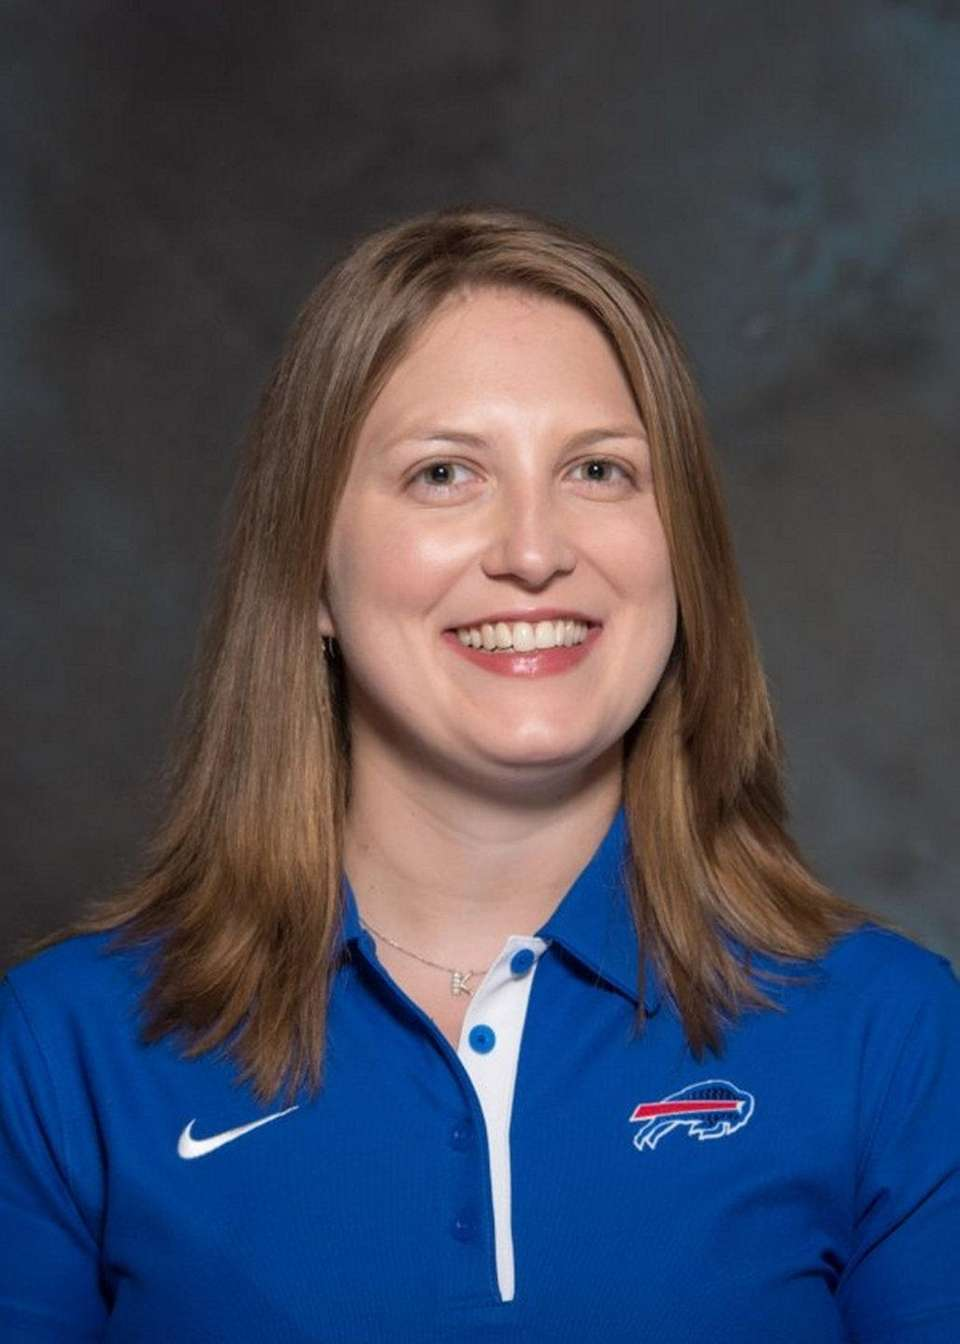 Smith became the first female full-time assistant coach